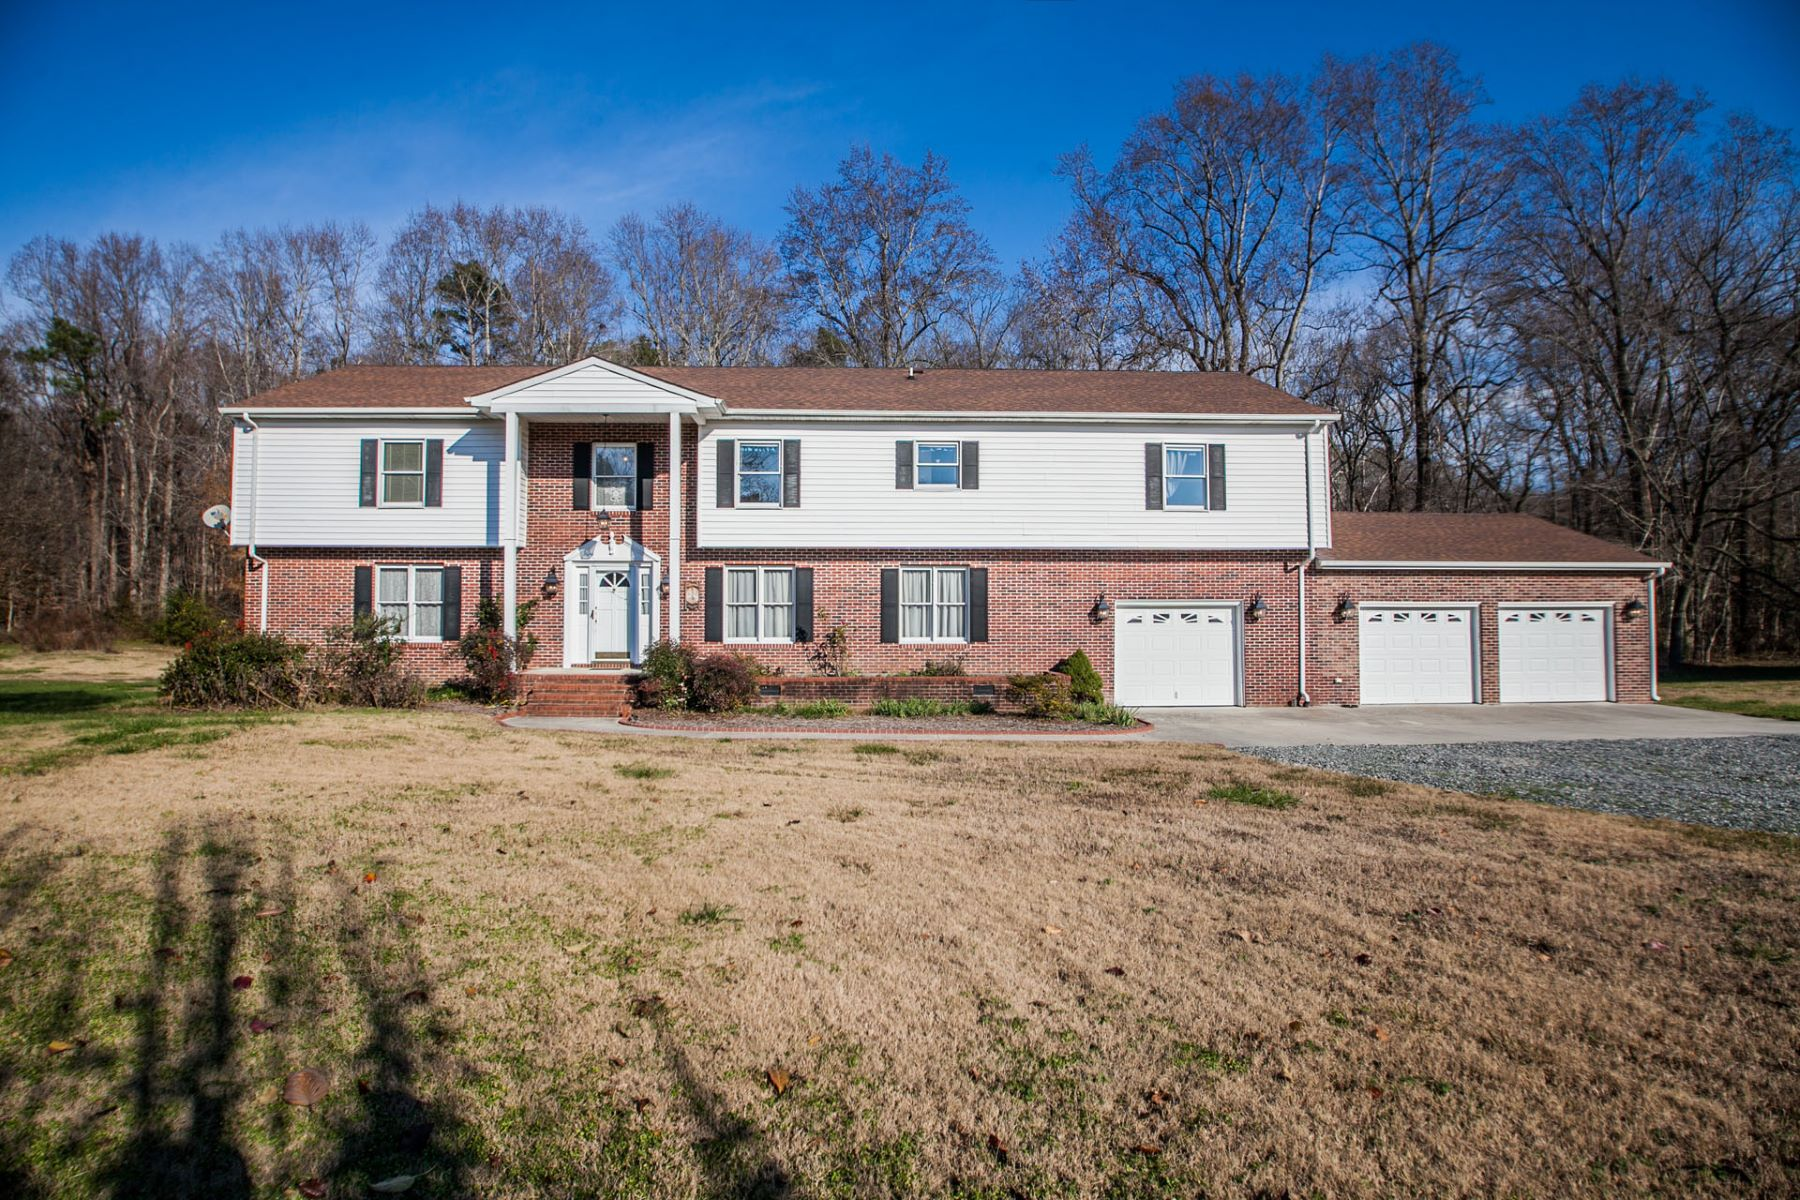 Single Family Home for Sale at Belroi Farms 4761 Belroi Green Cir. Gloucester, Virginia, 23061 United States